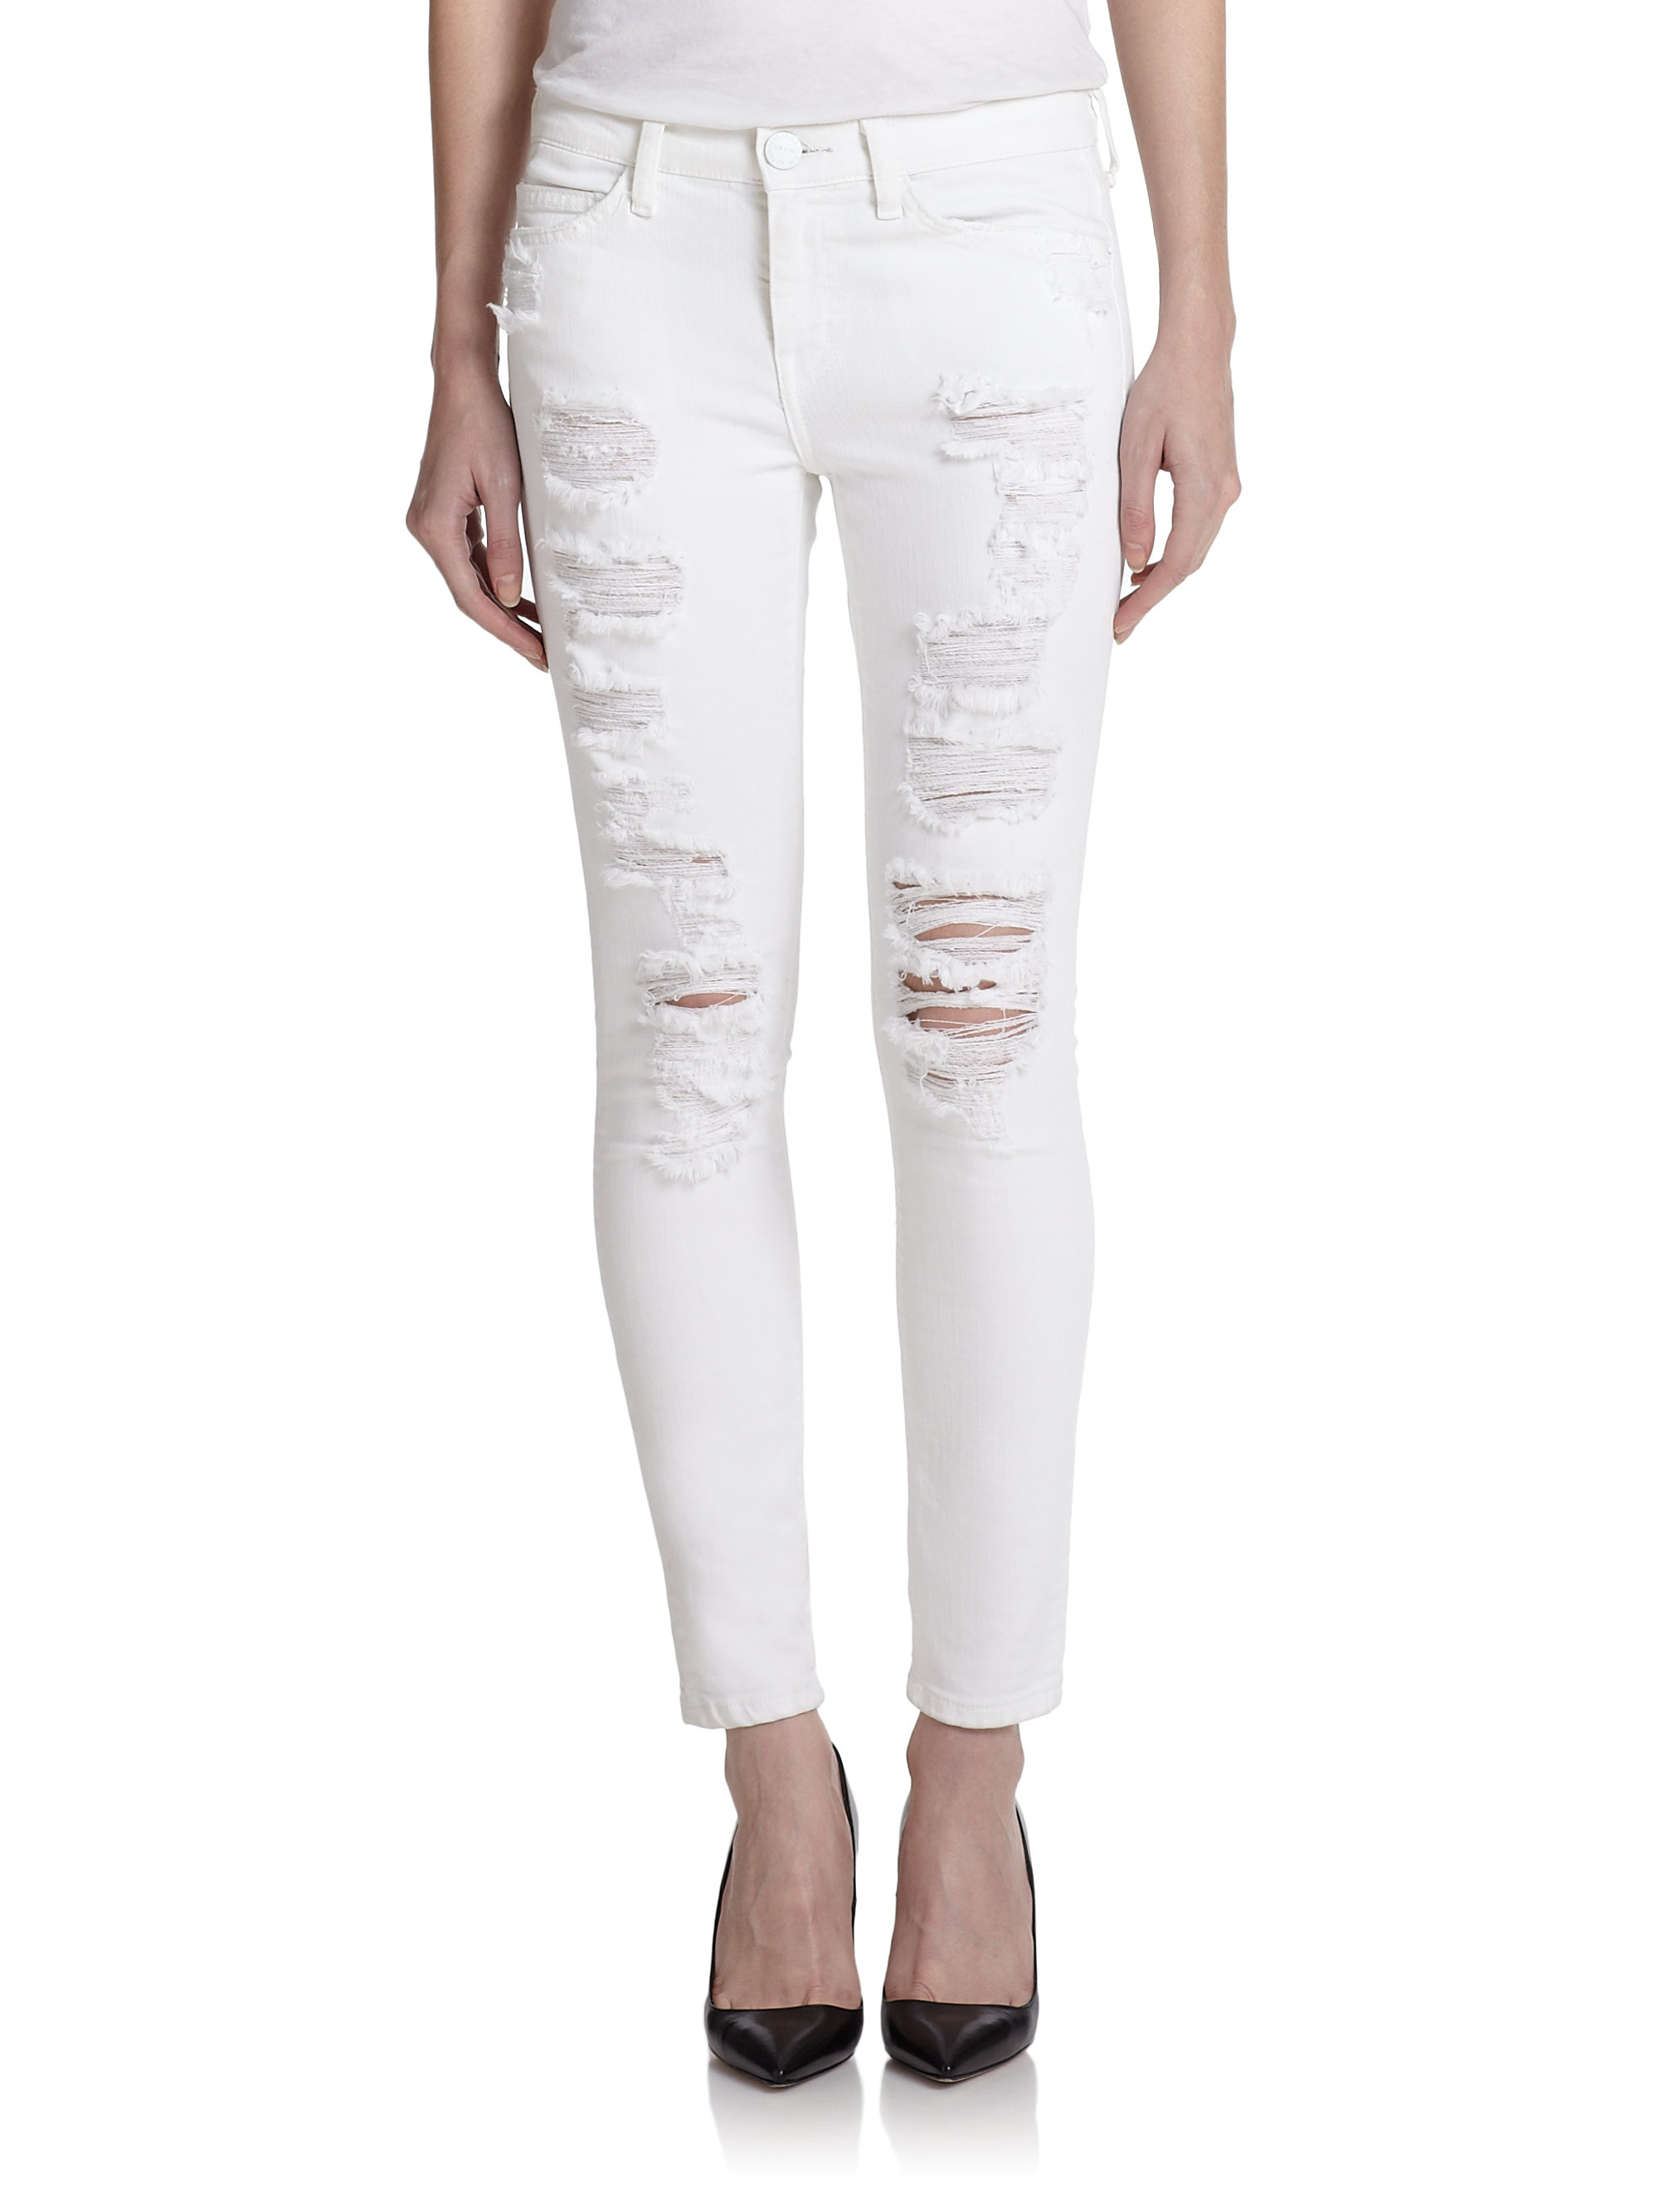 Current/elliott The Stiletto Distressed Skinny Jeans in White | Lyst